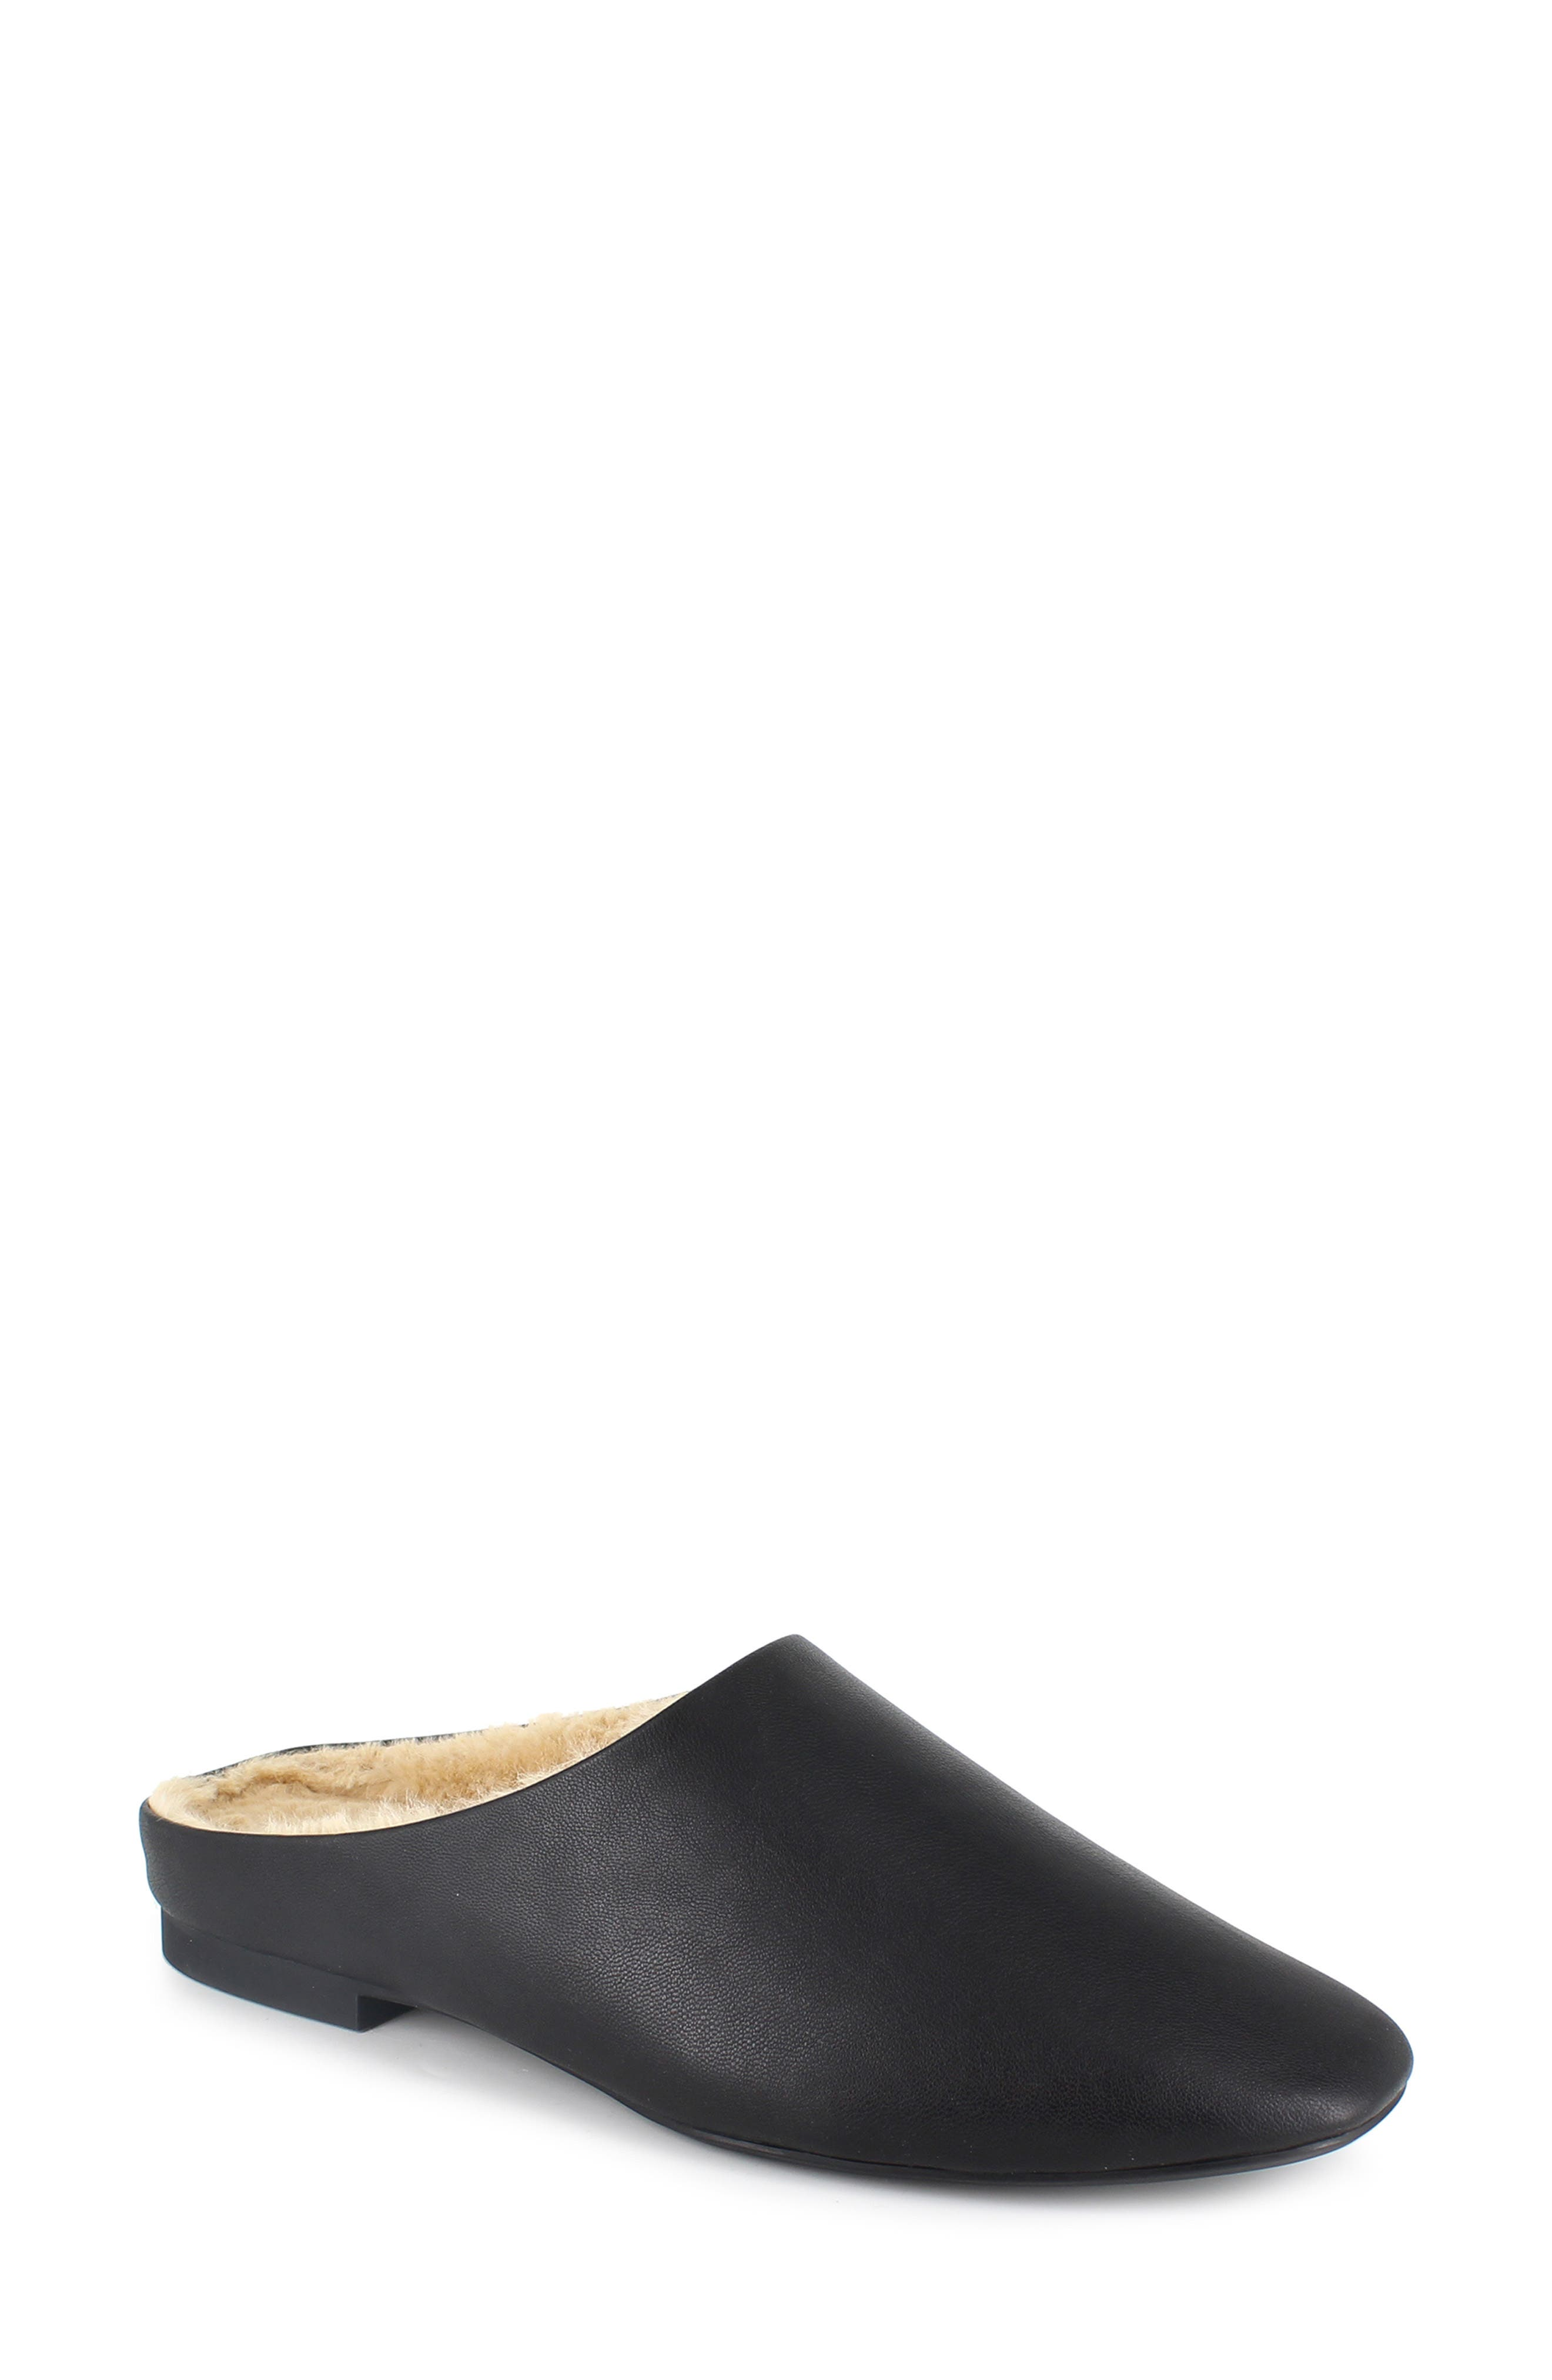 Nathaly Faux Shearling Lined Mule